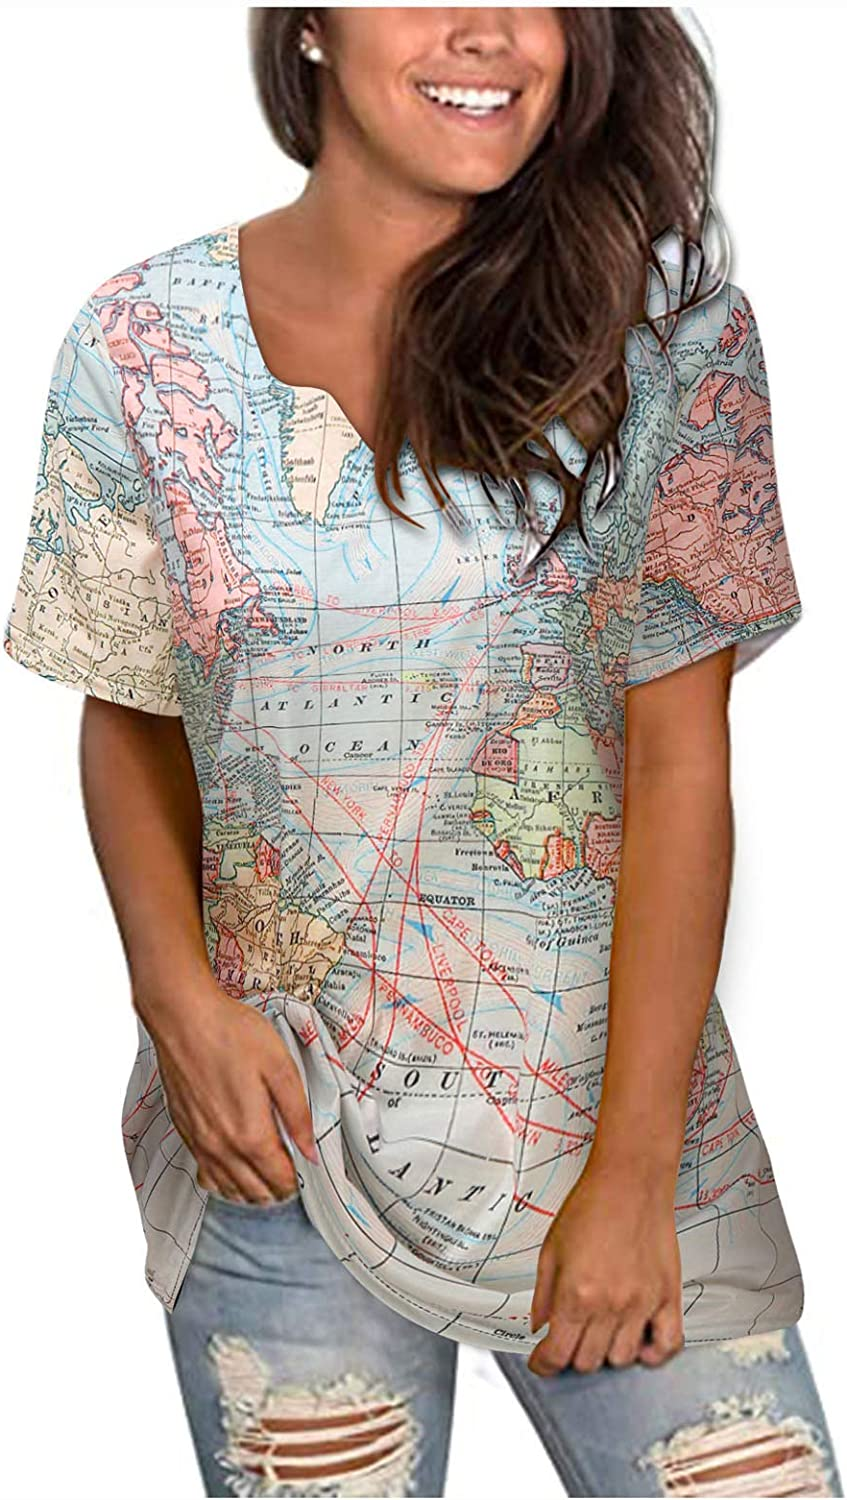 POTO Summer T Shirts for Womens Short Sleeve Casual Comfort Blouse T-Shirt Pullover Map Printed Shirts Tops